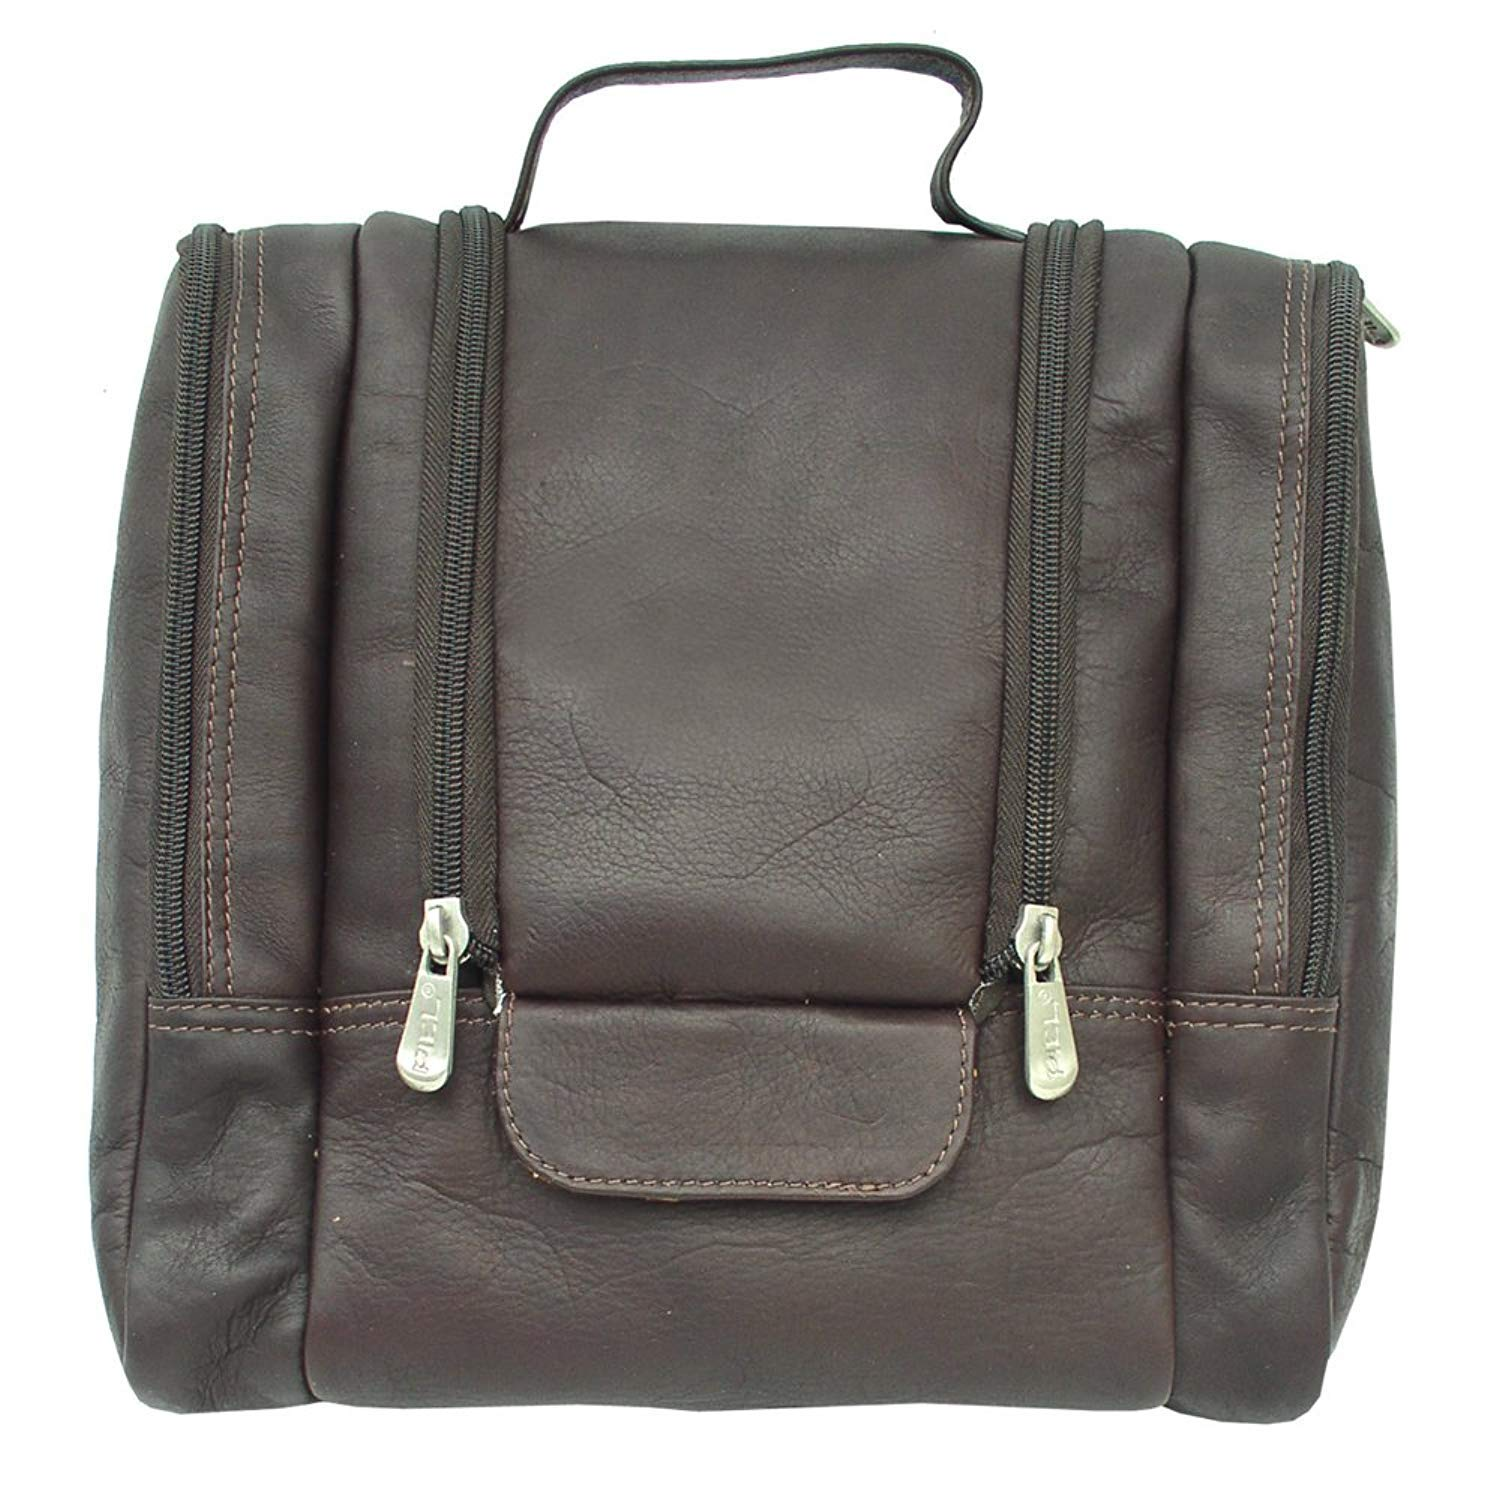 Piel Custom Personalized Leather Hanging Toiletry Kit in Chocolate